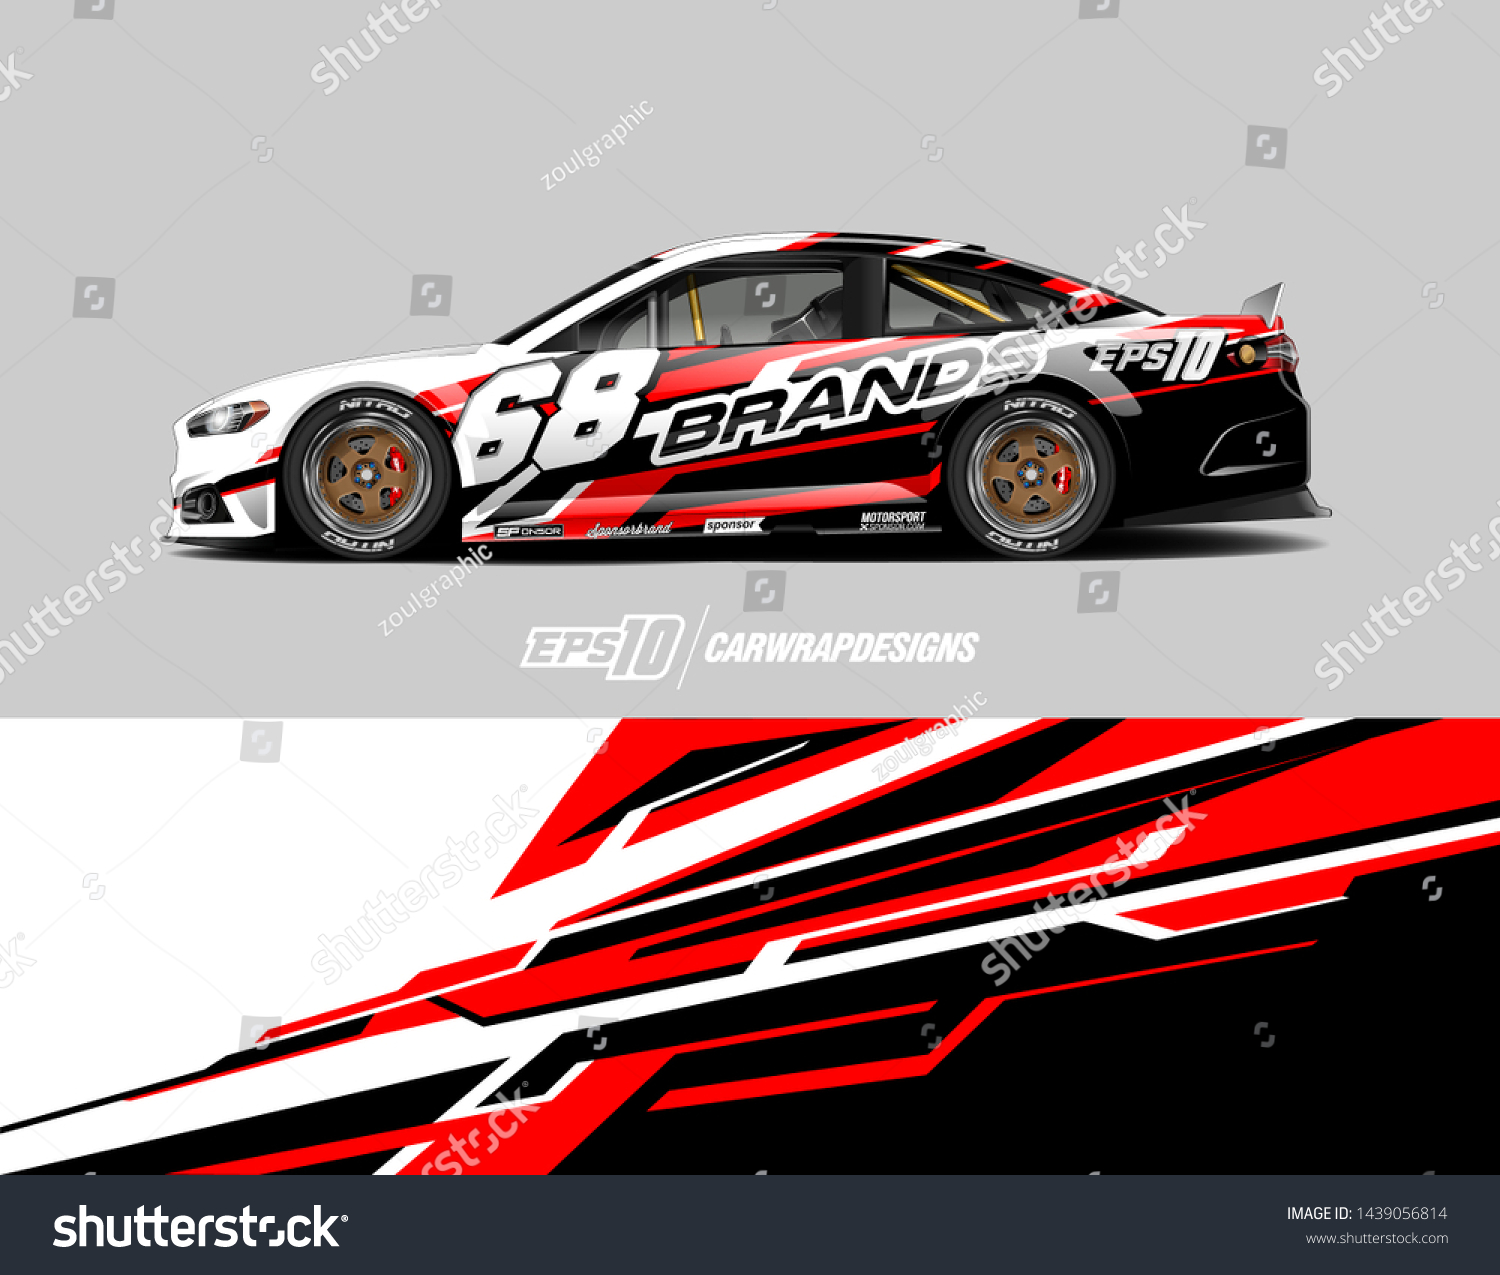 Car Graphic Design Concept Abstract Racing Stock Vector Royalty Free 1439056814